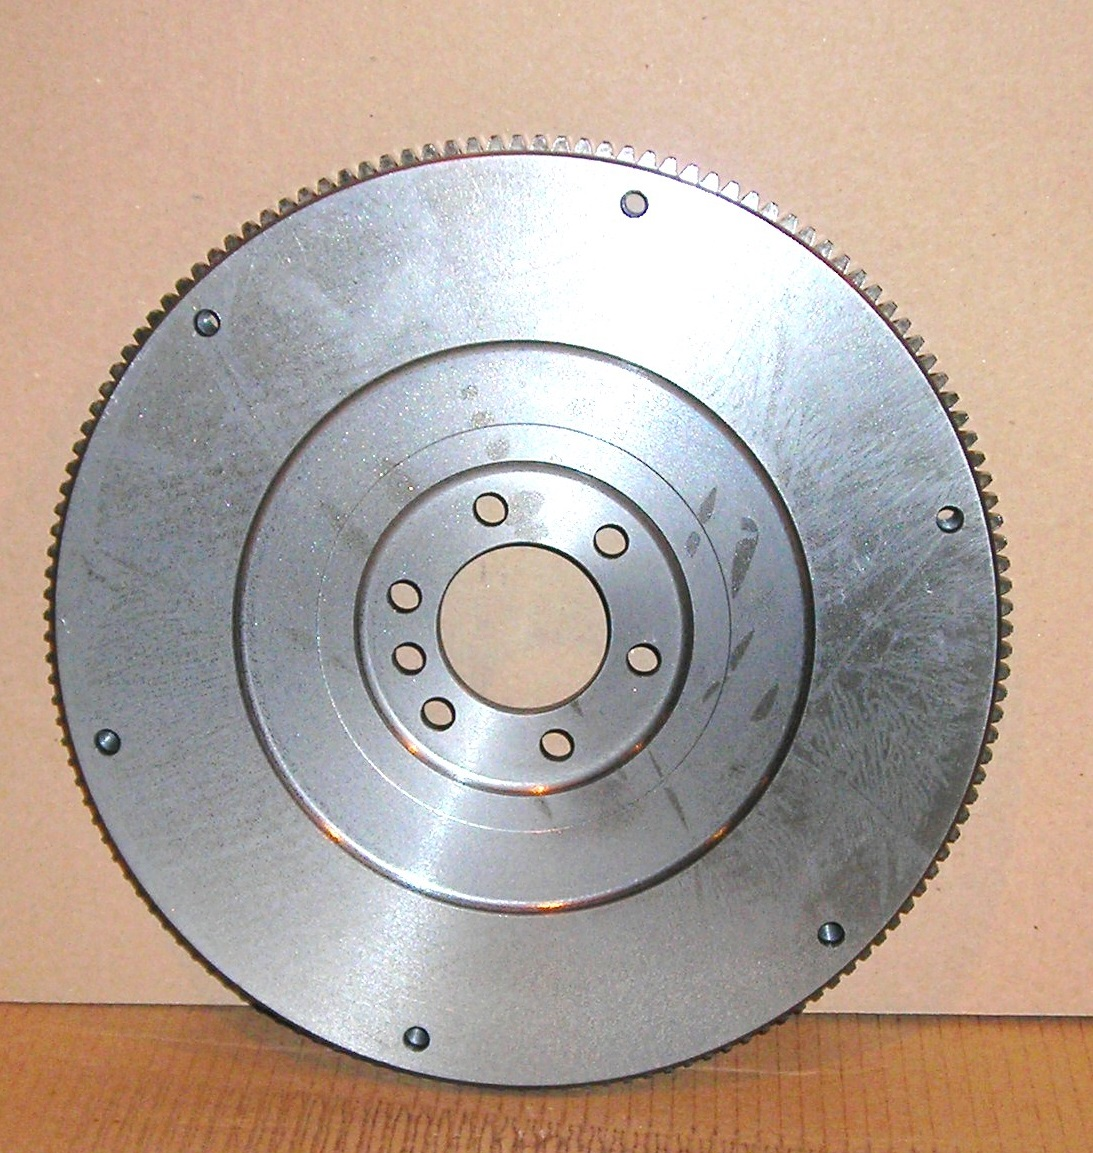 12556799 GM Medium Duty Flywheel Front View - fixed